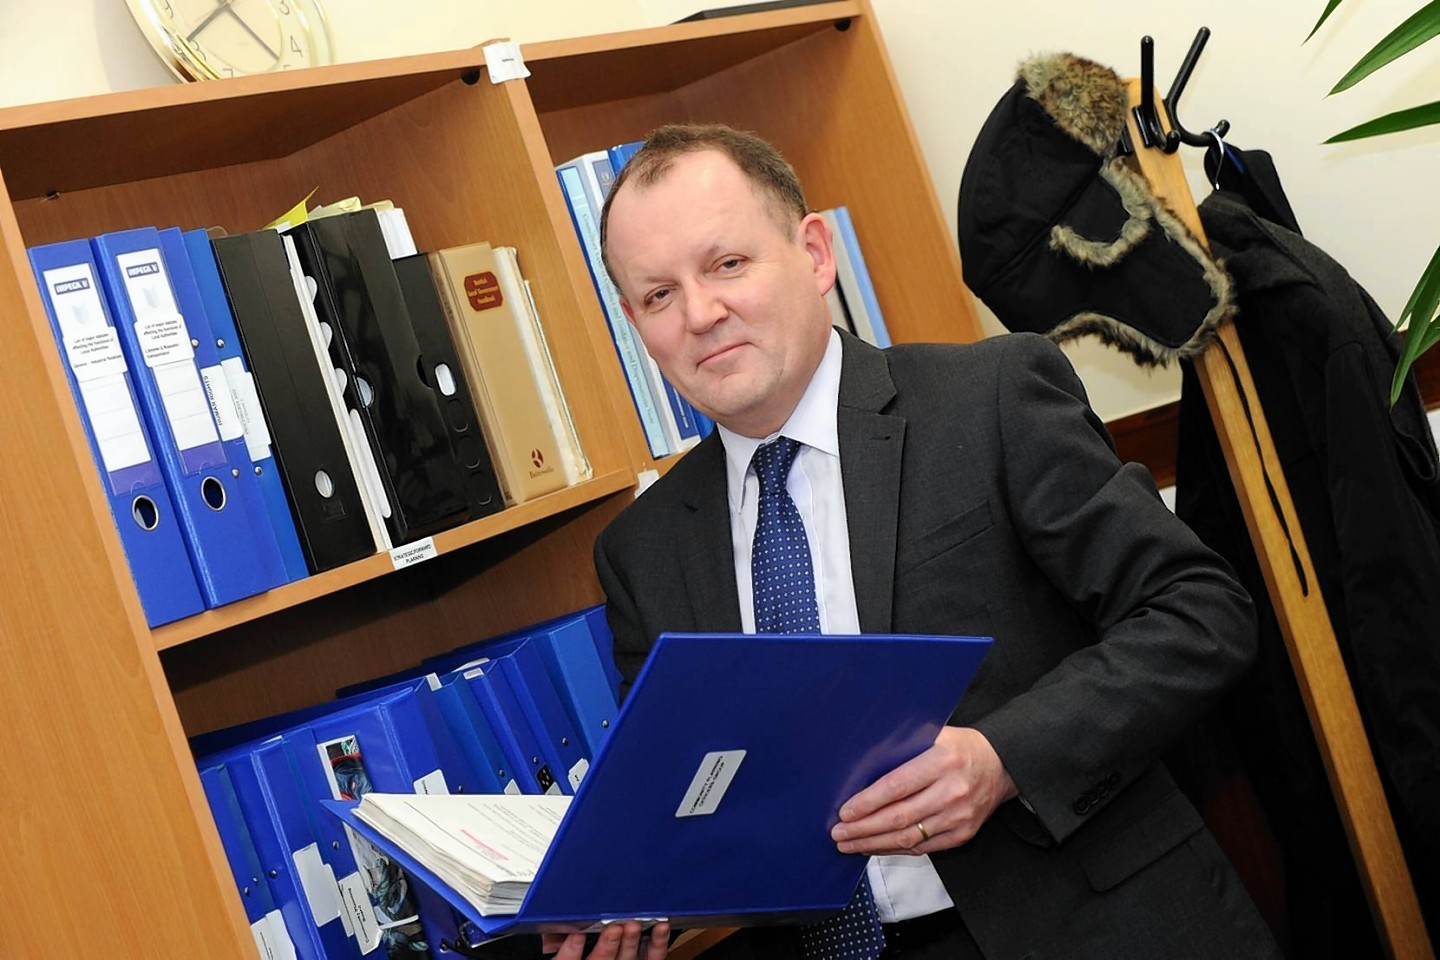 Roddy Burns insists he is committed to ensuring pupils are not sent home